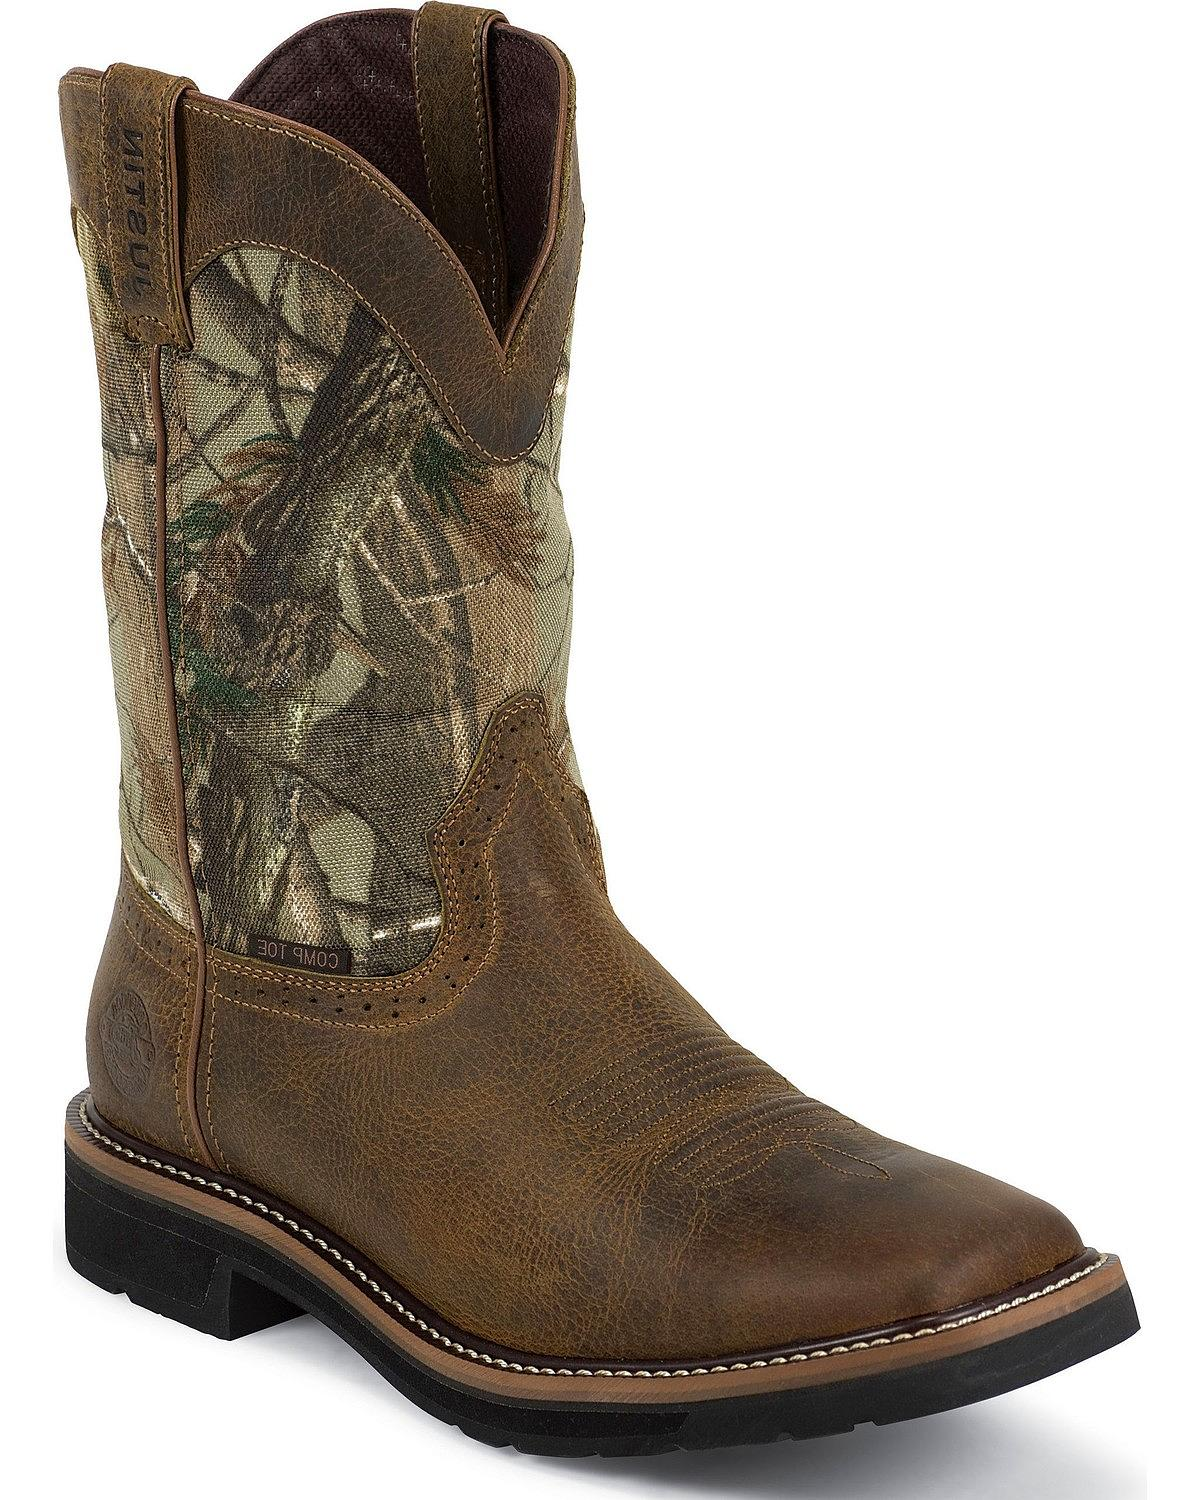 dbd91028294 Men's Hunting Boots - Boot Barn